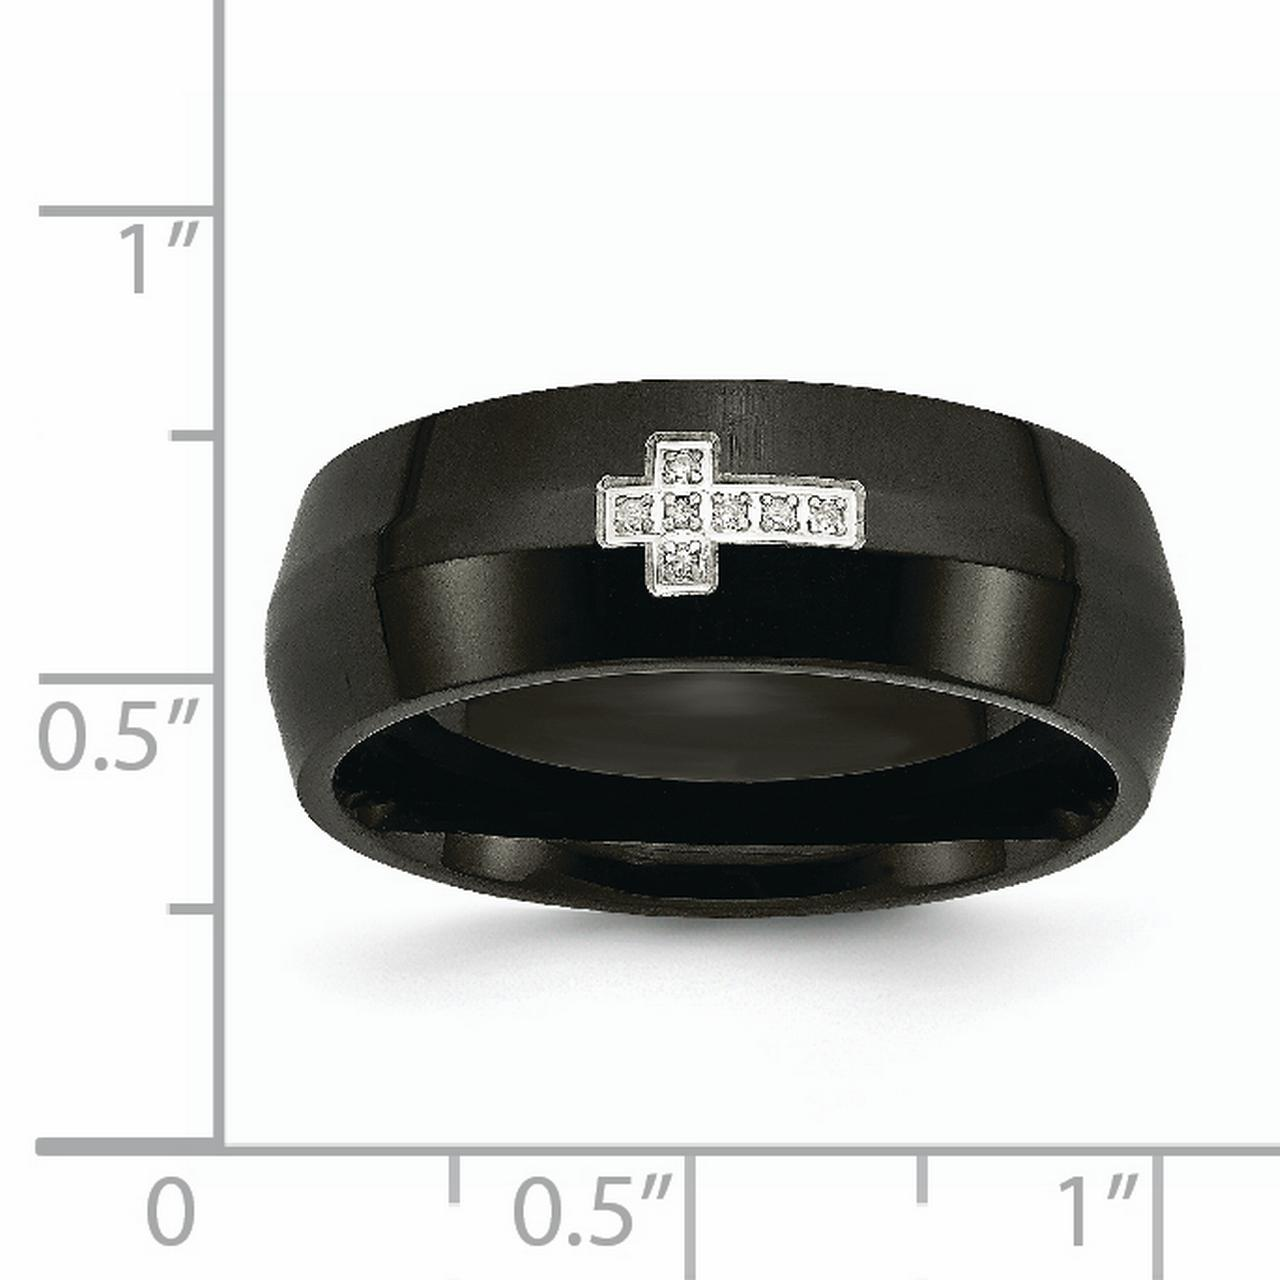 Stainless Steel Black Plated Diamond Cross Religious Band Ring Size 13.00 Man Fashion Jewelry Gift For Dad Mens For Him - image 4 of 7